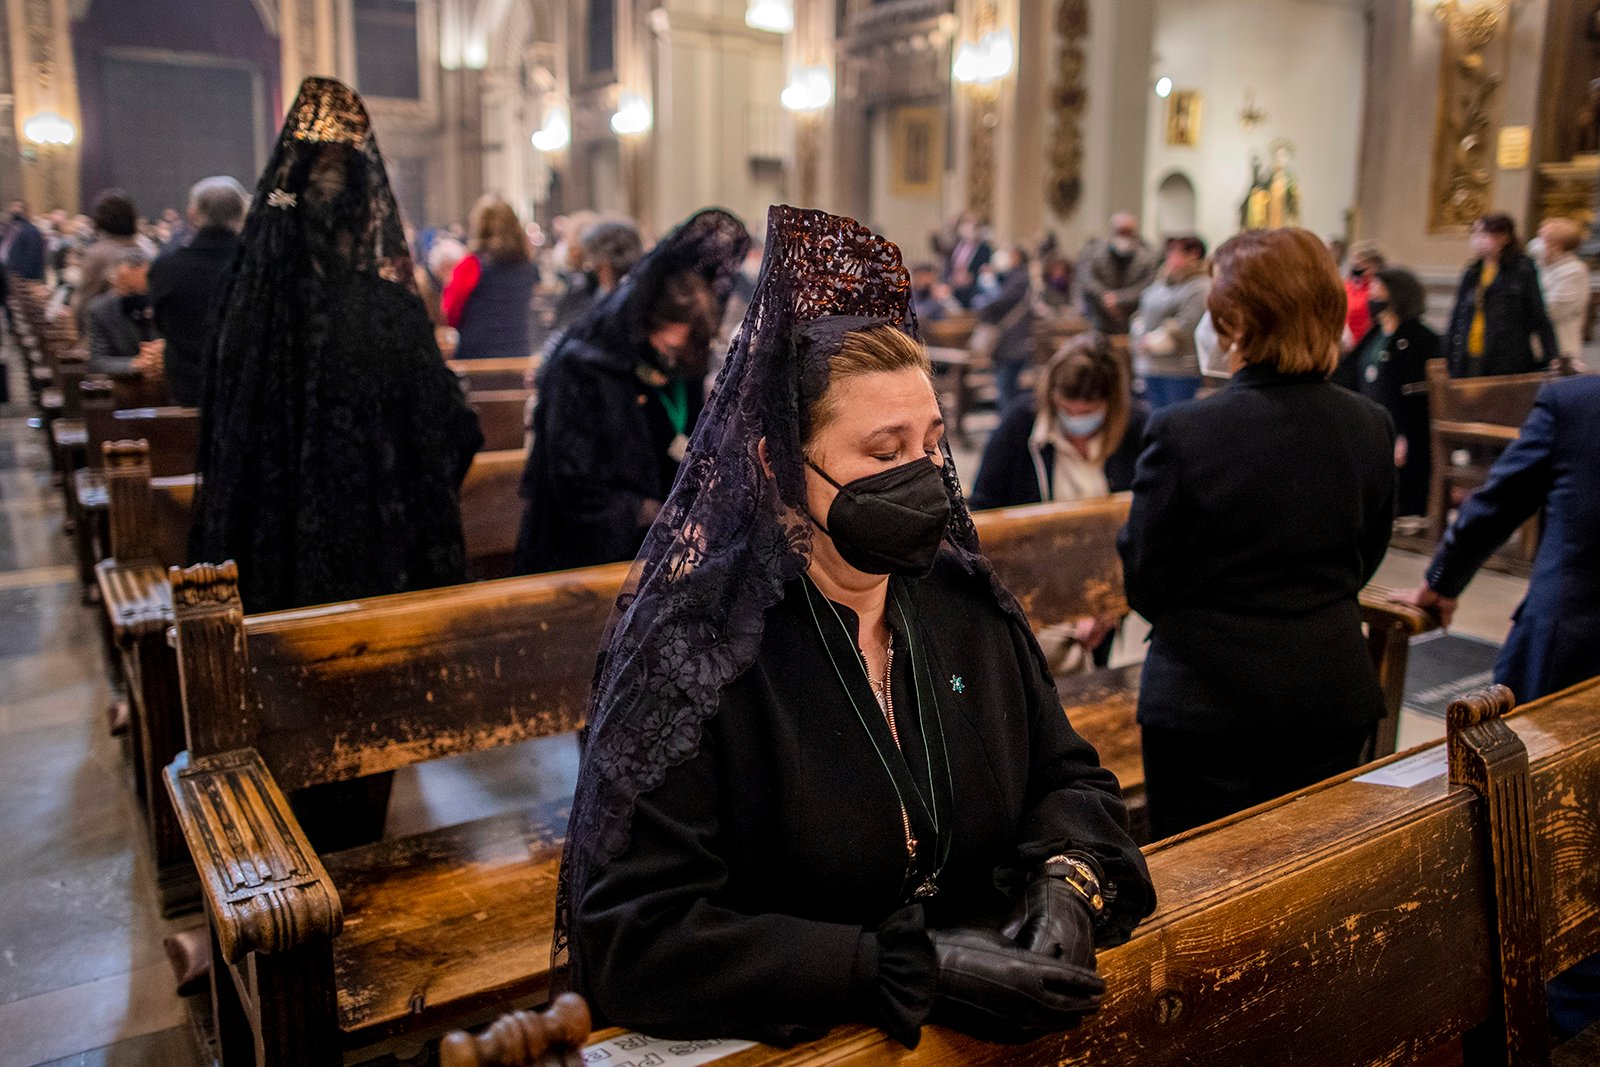 Women wearing traditional 'mantillas' attend a Mass at Collegiate Church of San Isidore in downtown Madrid, Spain, Thursday, April 1, 2021. For a second year running, Spain has had to cancel Easter Week processions to help stop the spread of COVID-19. (AP Photo/Manu Fernandez)